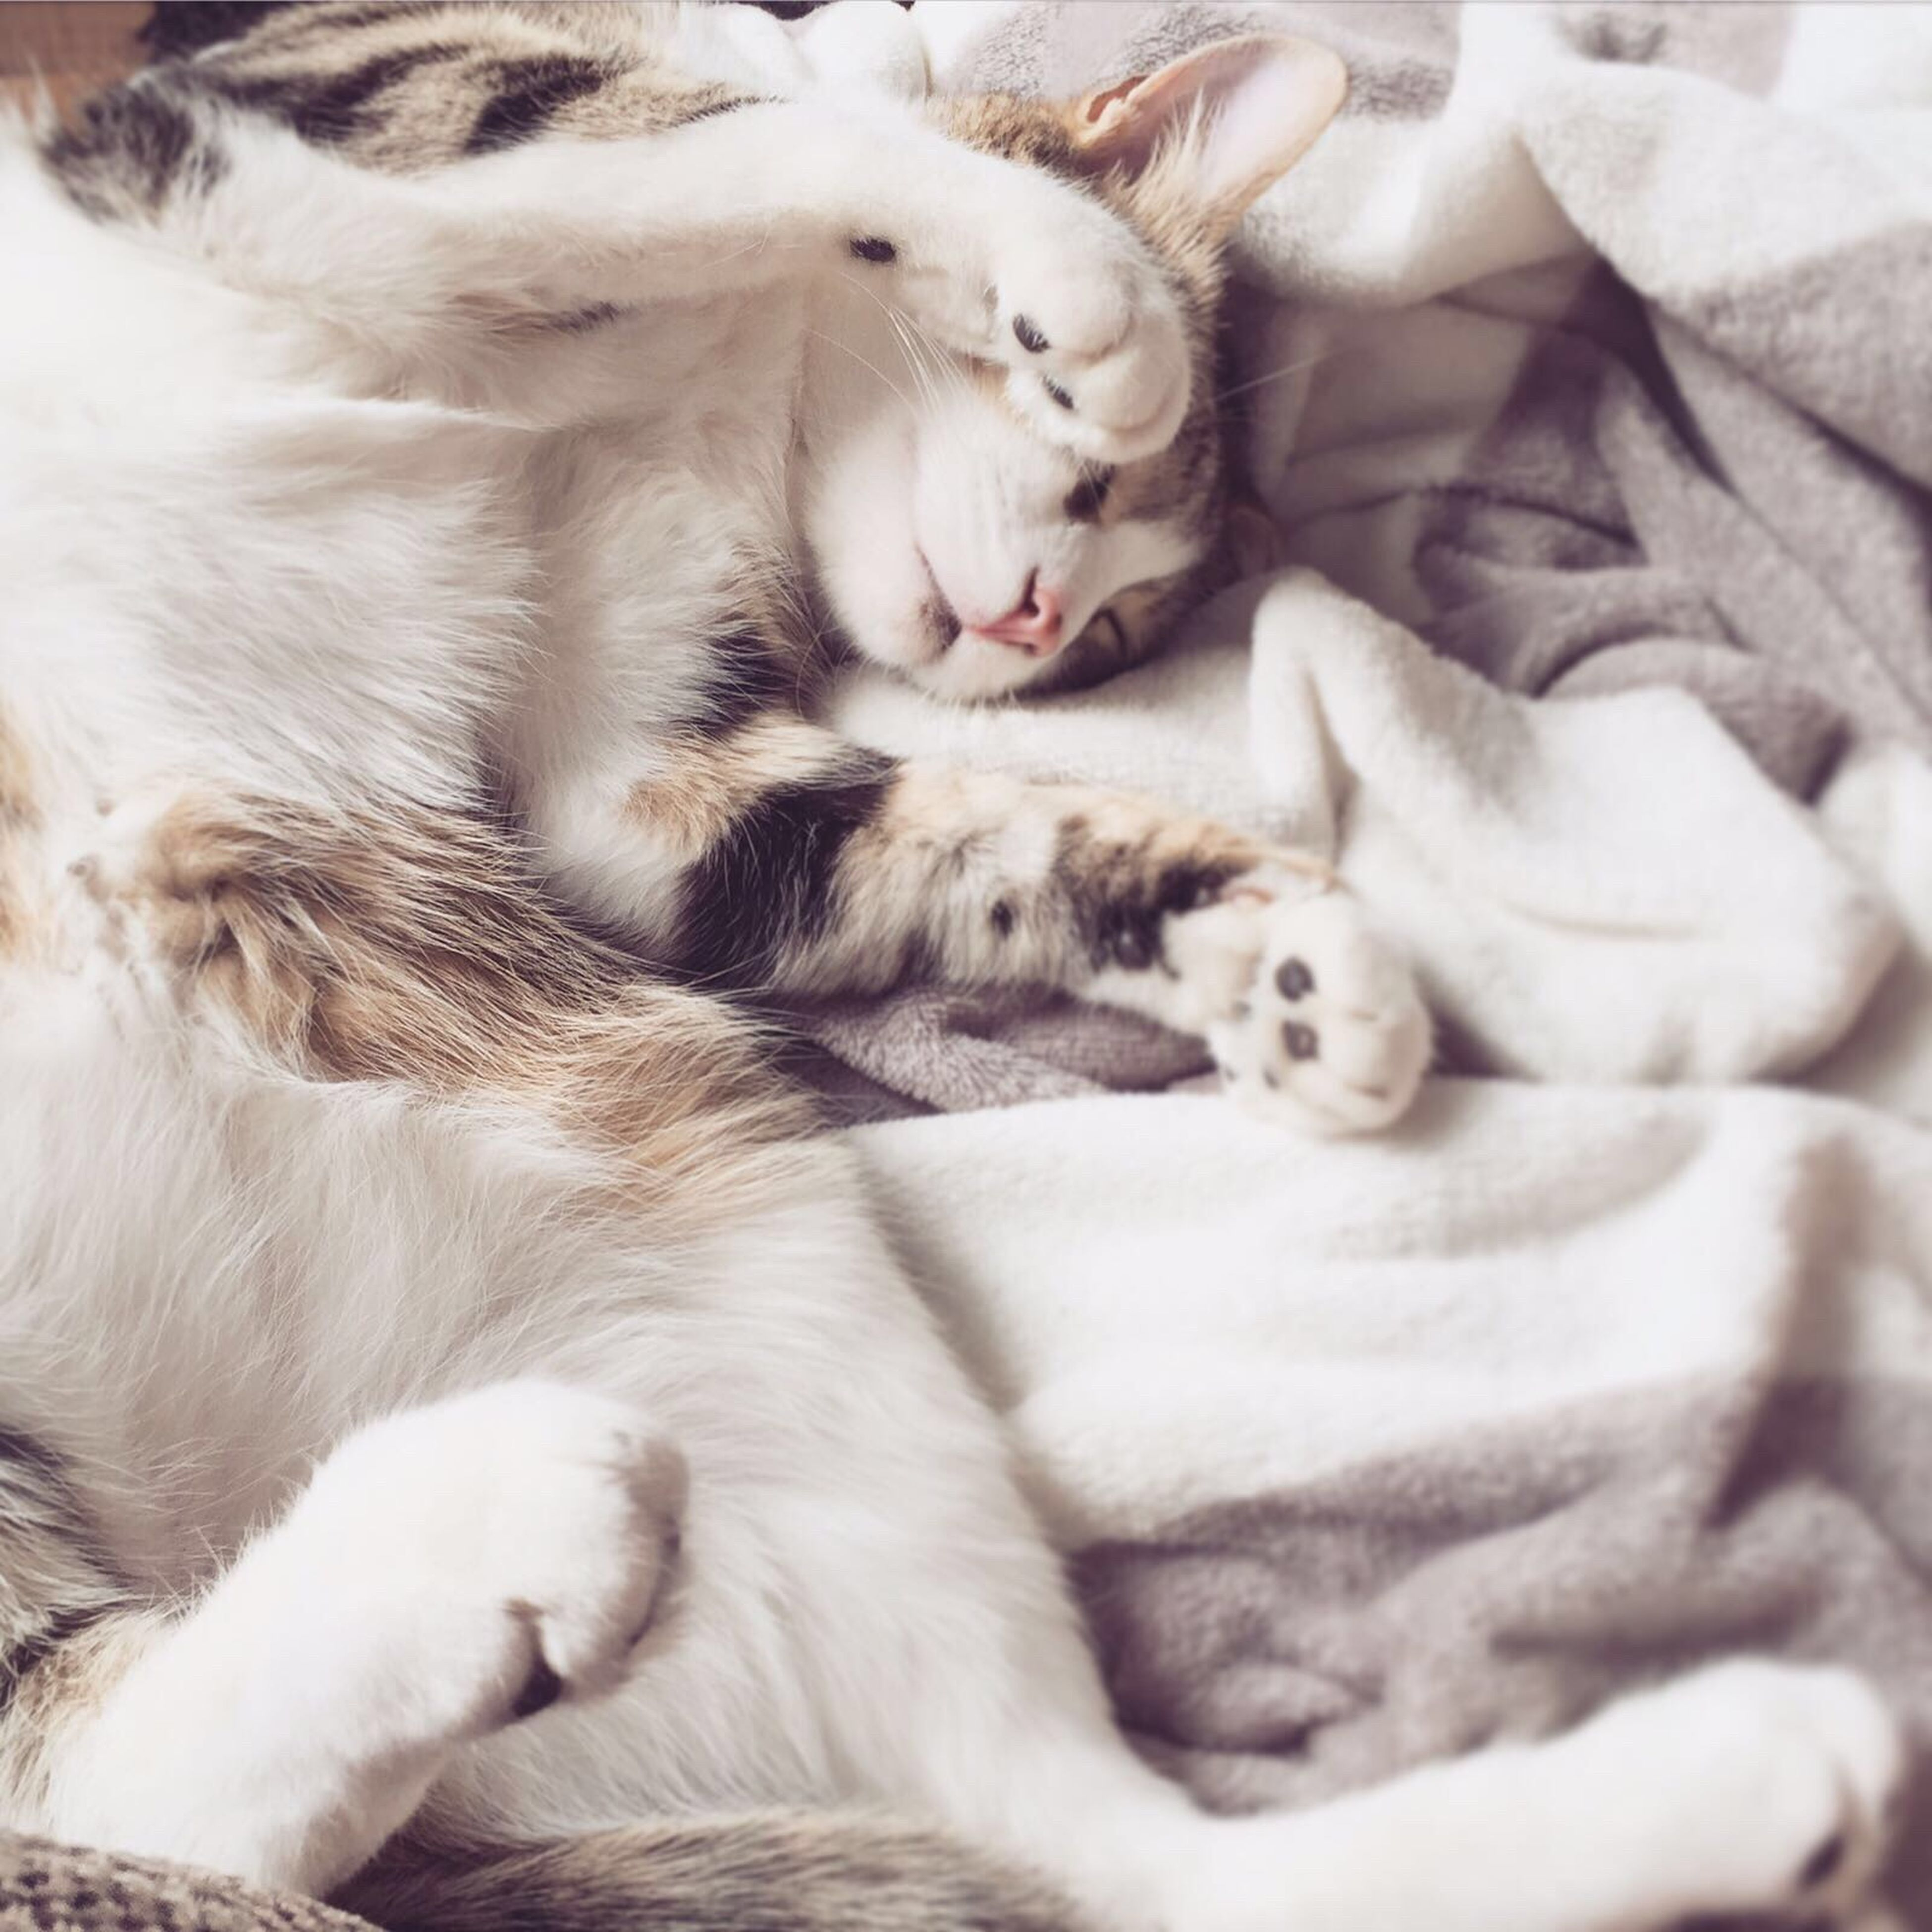 domestic animals, pets, domestic cat, mammal, animal themes, relaxation, lying down, sleeping, feline, no people, togetherness, cat, close-up, indoors, day